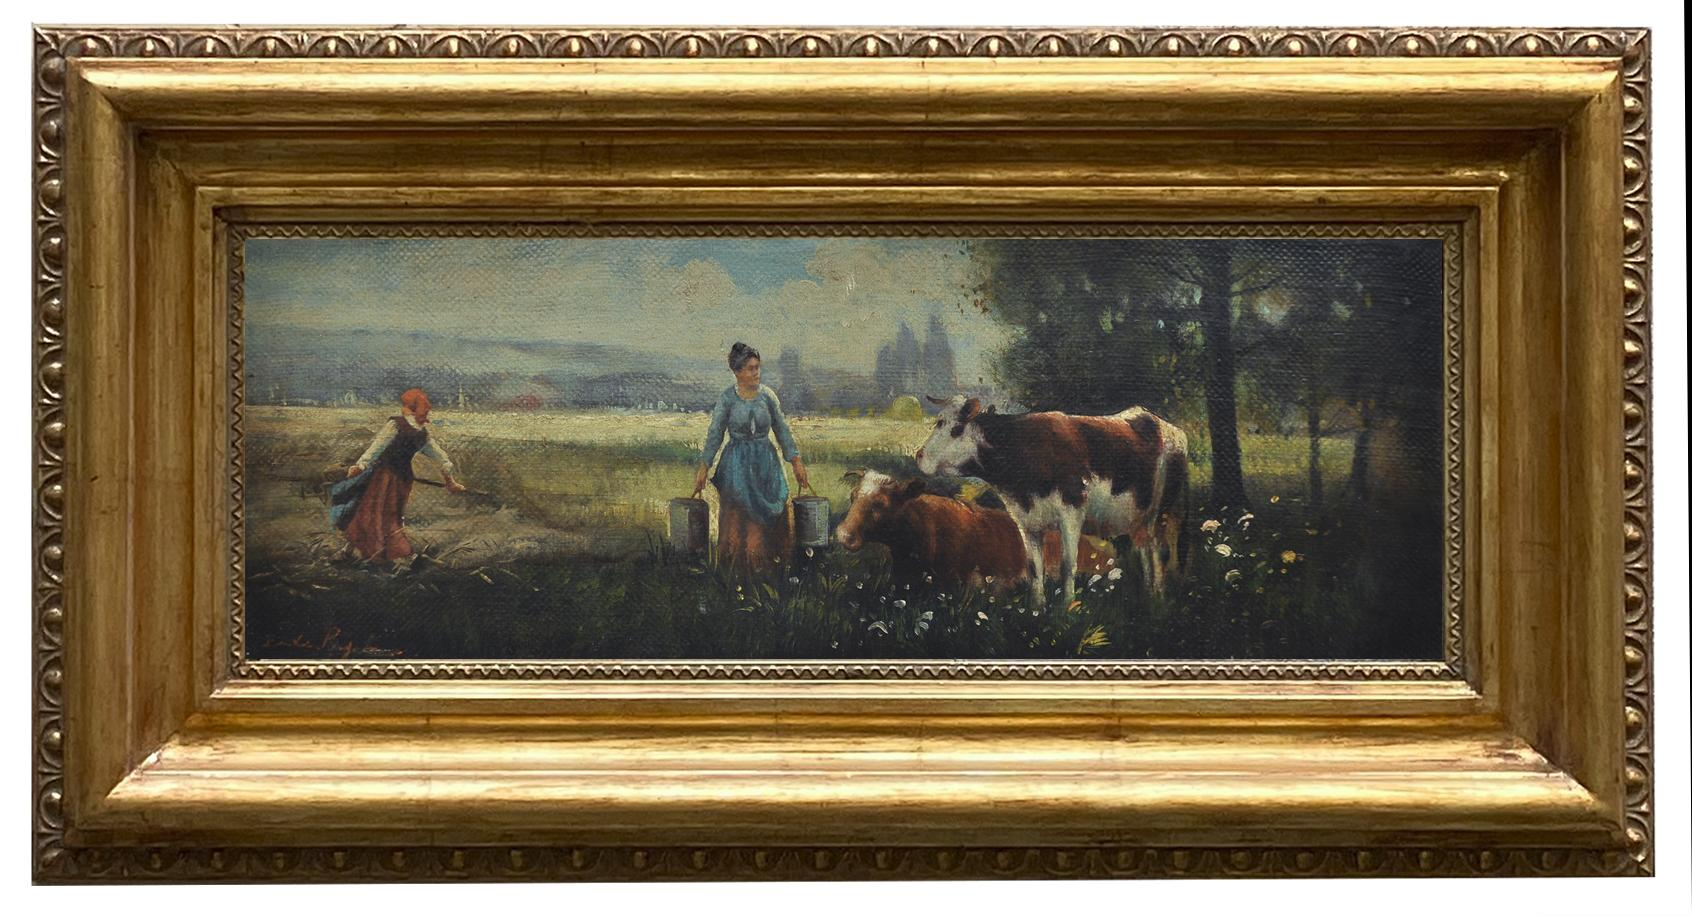 COUNTRY SCENE - French School - Italian -  Figurative - Oil on canvas painting